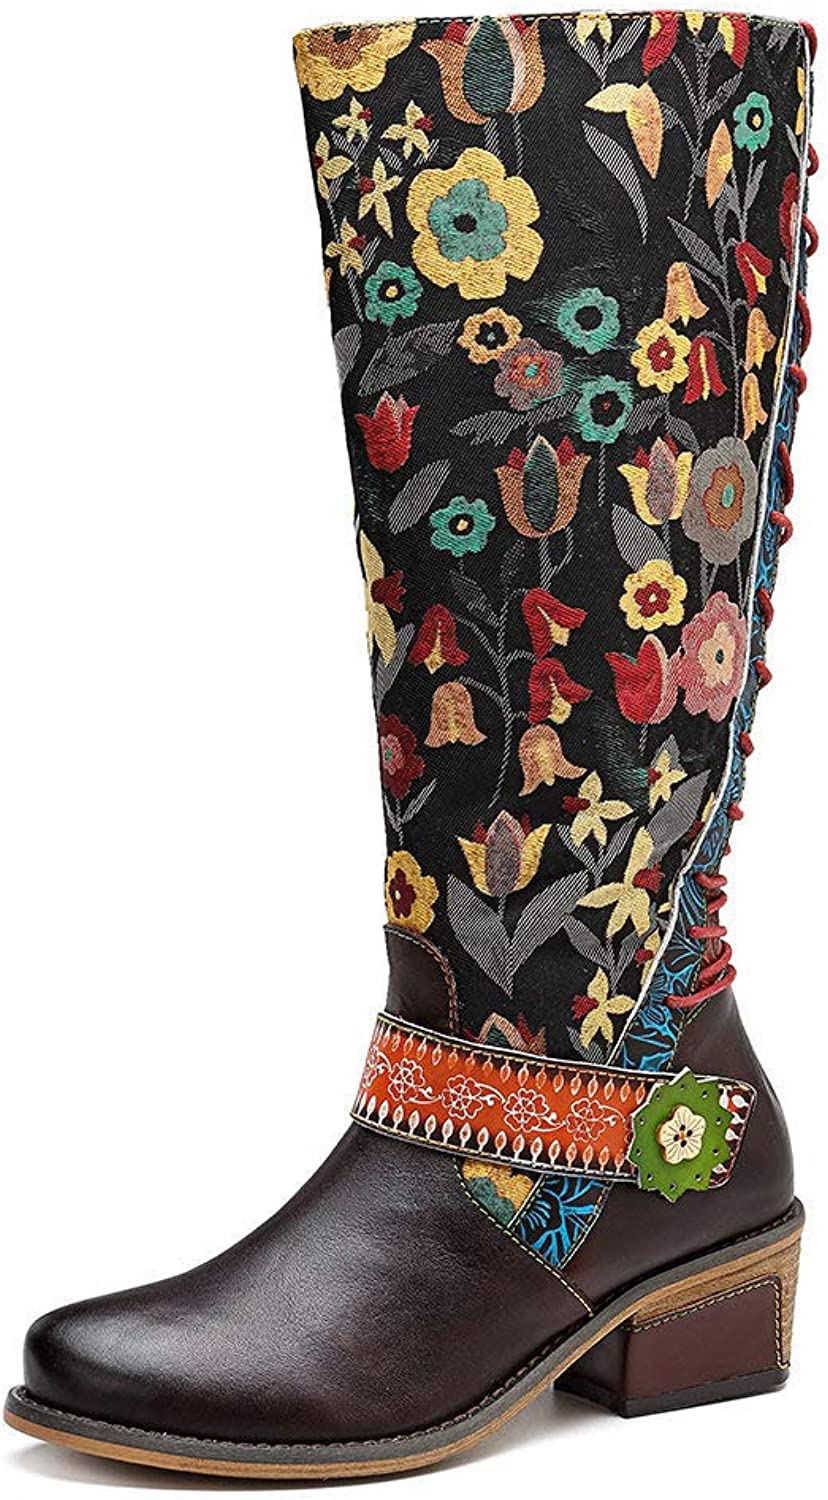 Women's Casual Vintage Genuine Leather Hand-Painted Knee-high Boots, Comfortable and Breathable Side Zipper Women's Boots